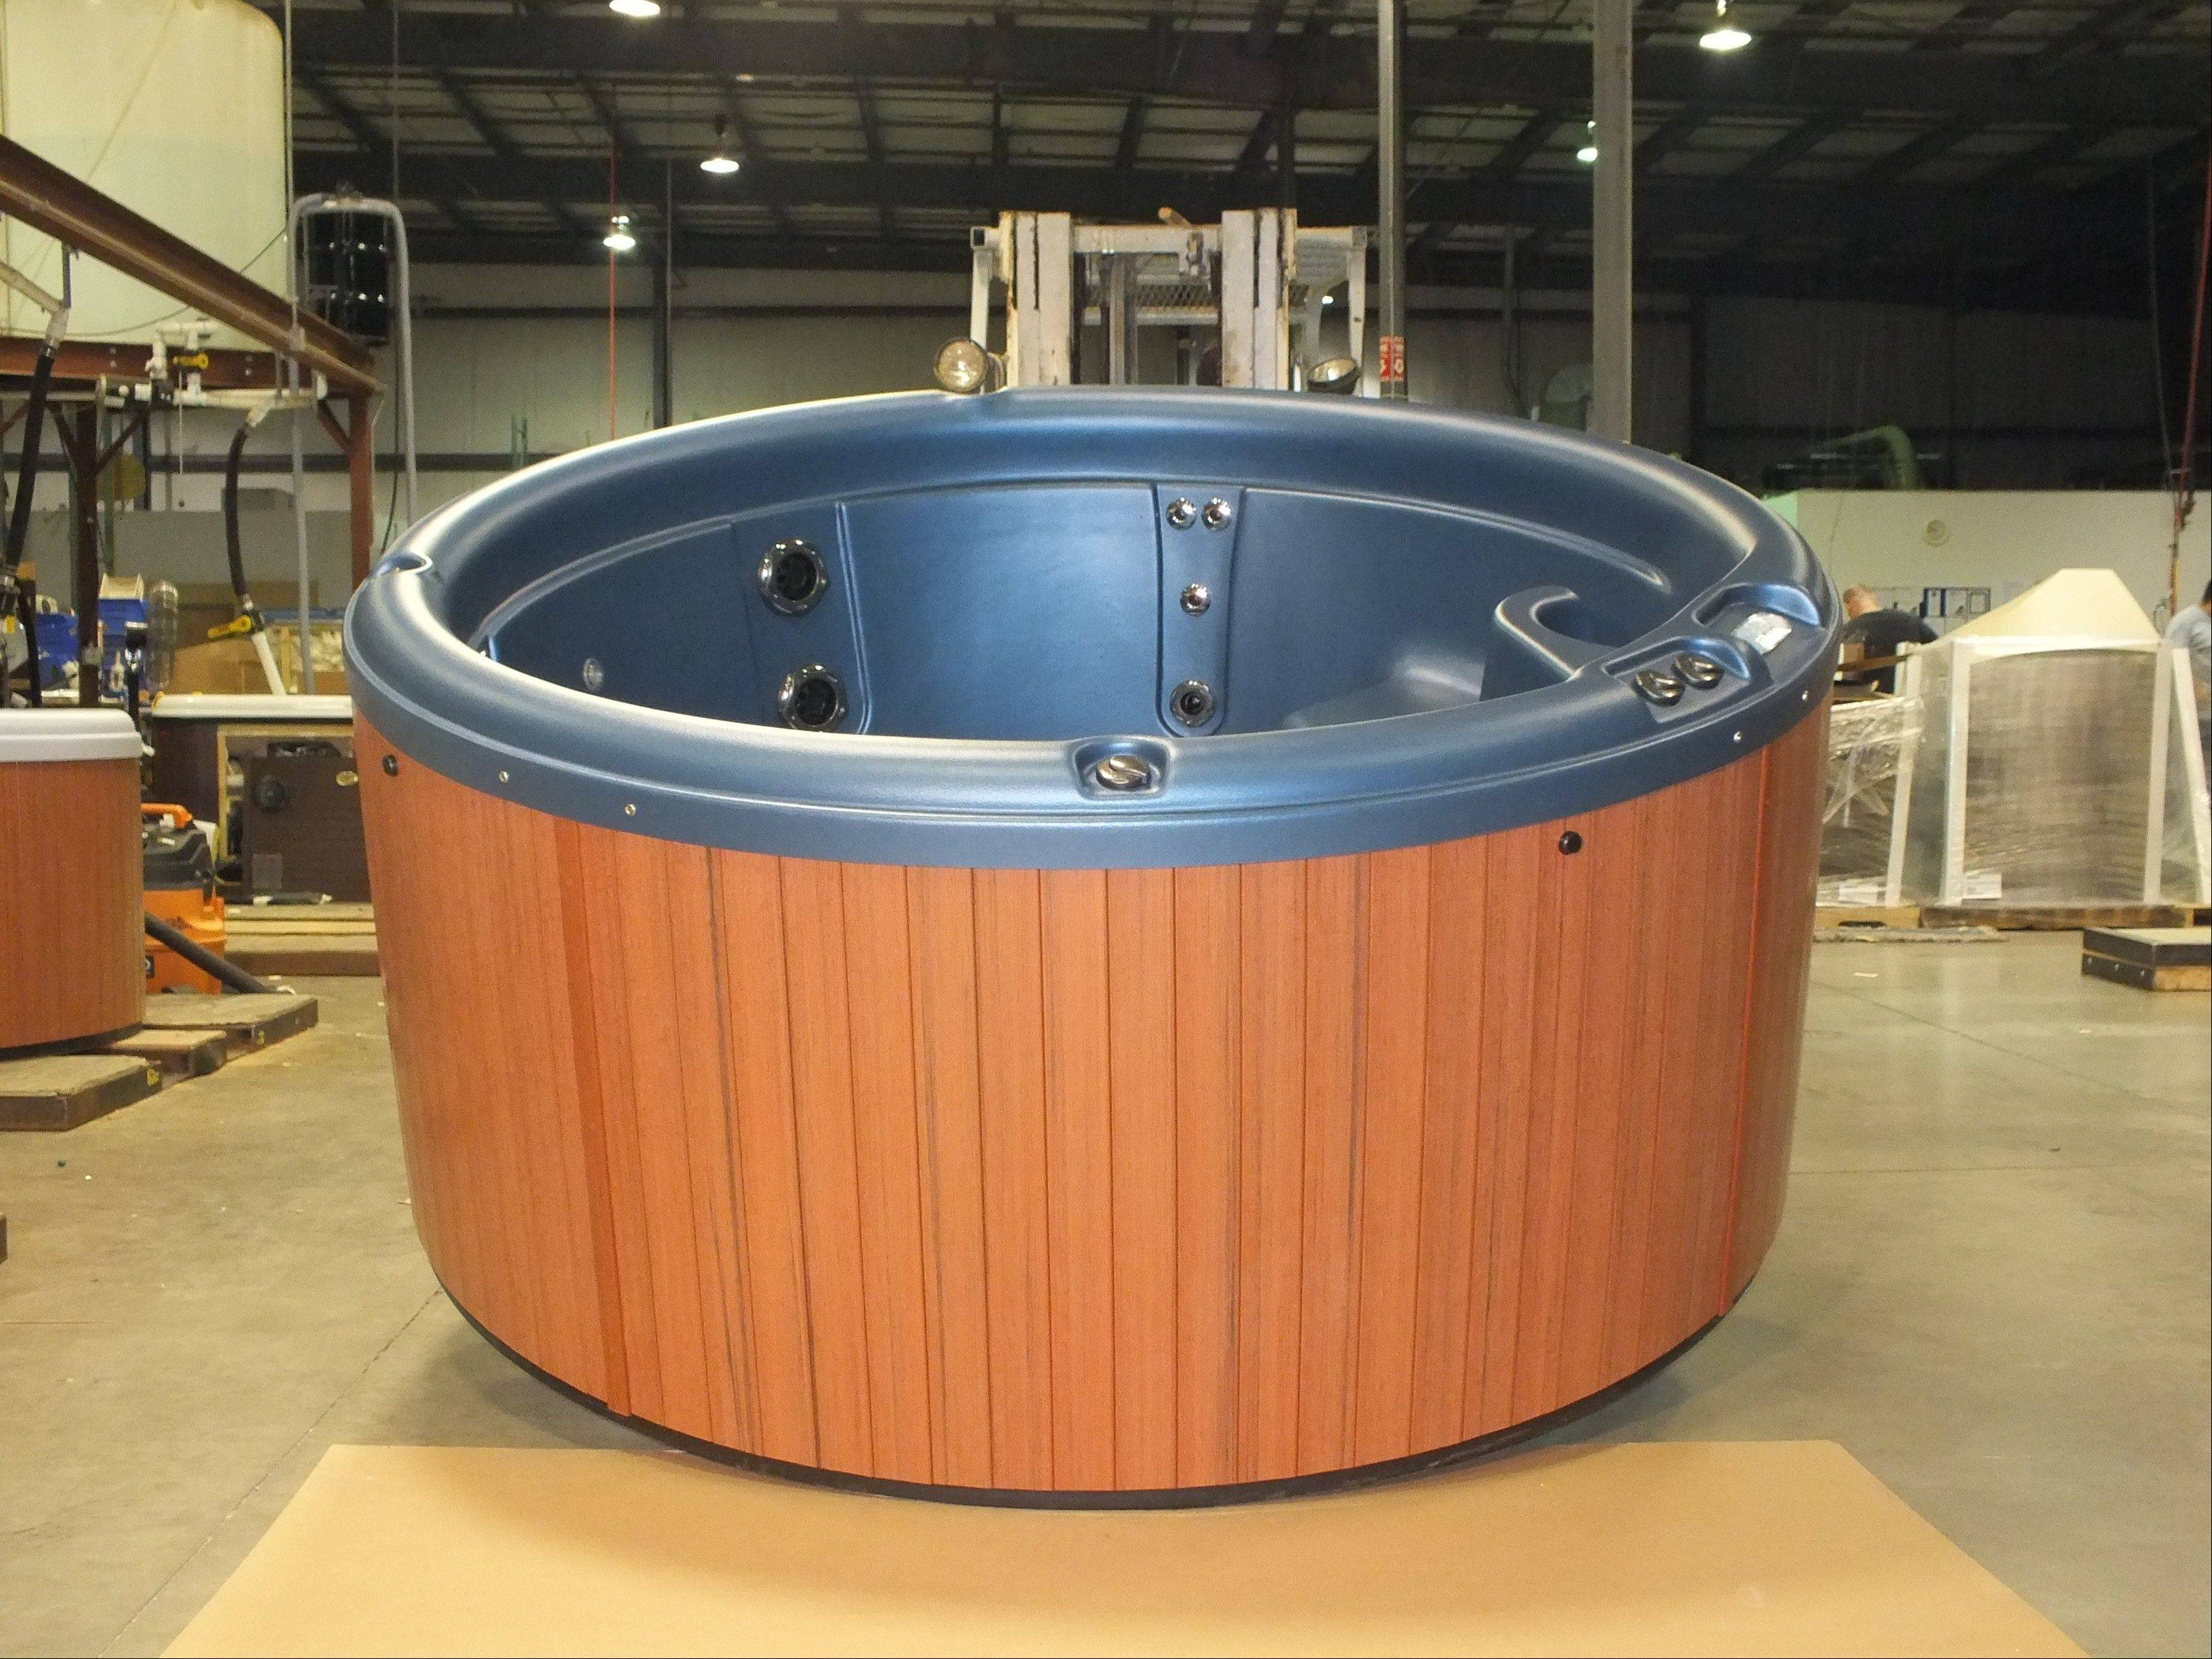 Midwest Spa carries a wide range of hot tubs and spas.